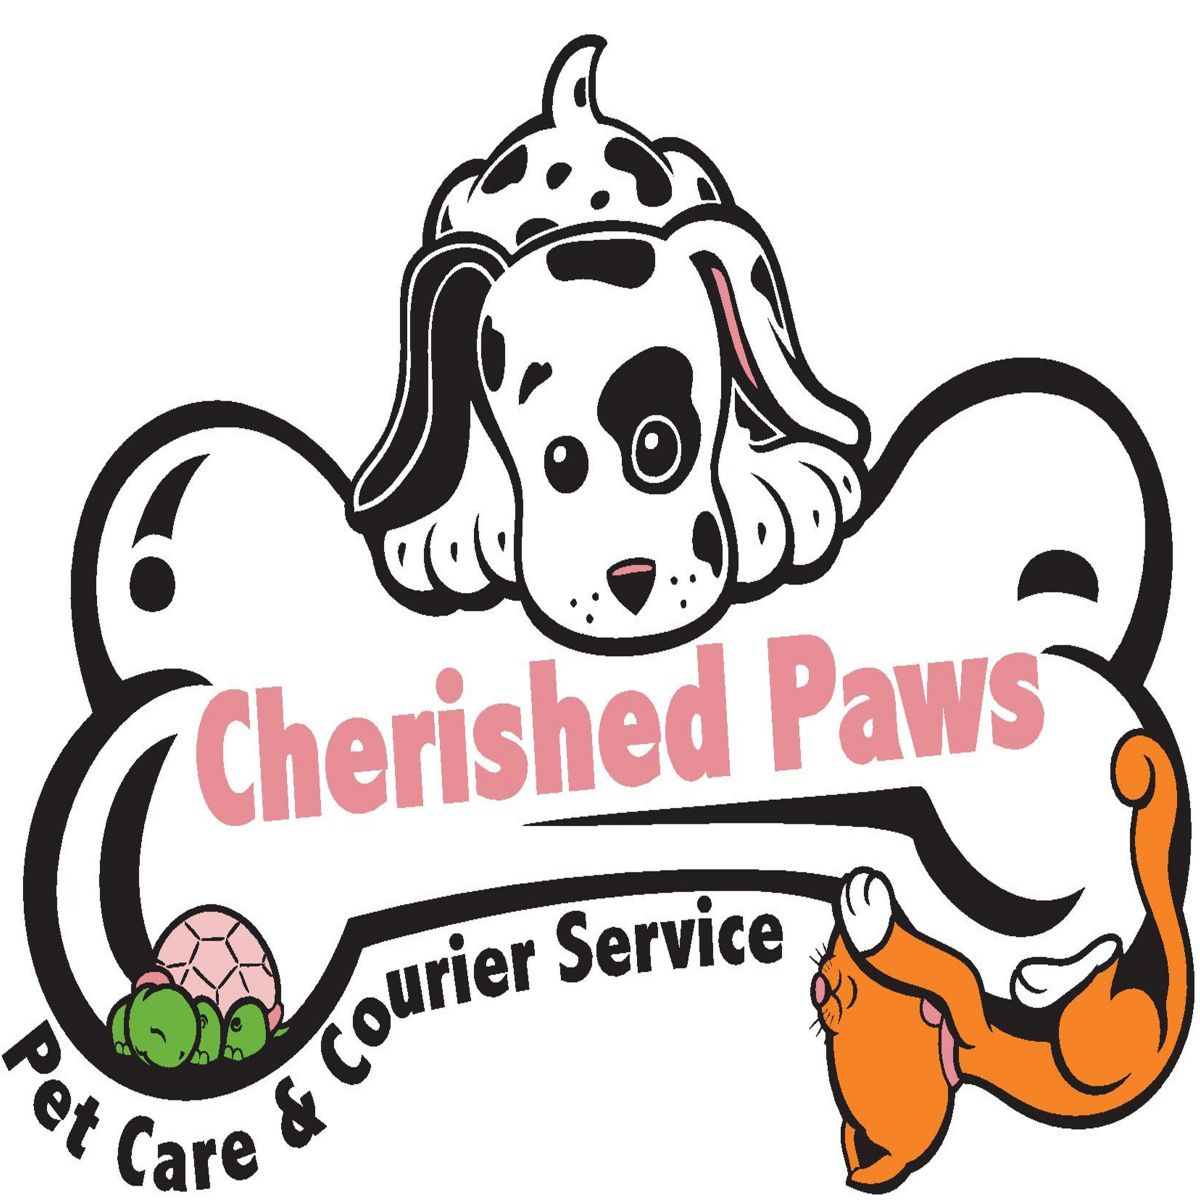 Cherished Paws LLC